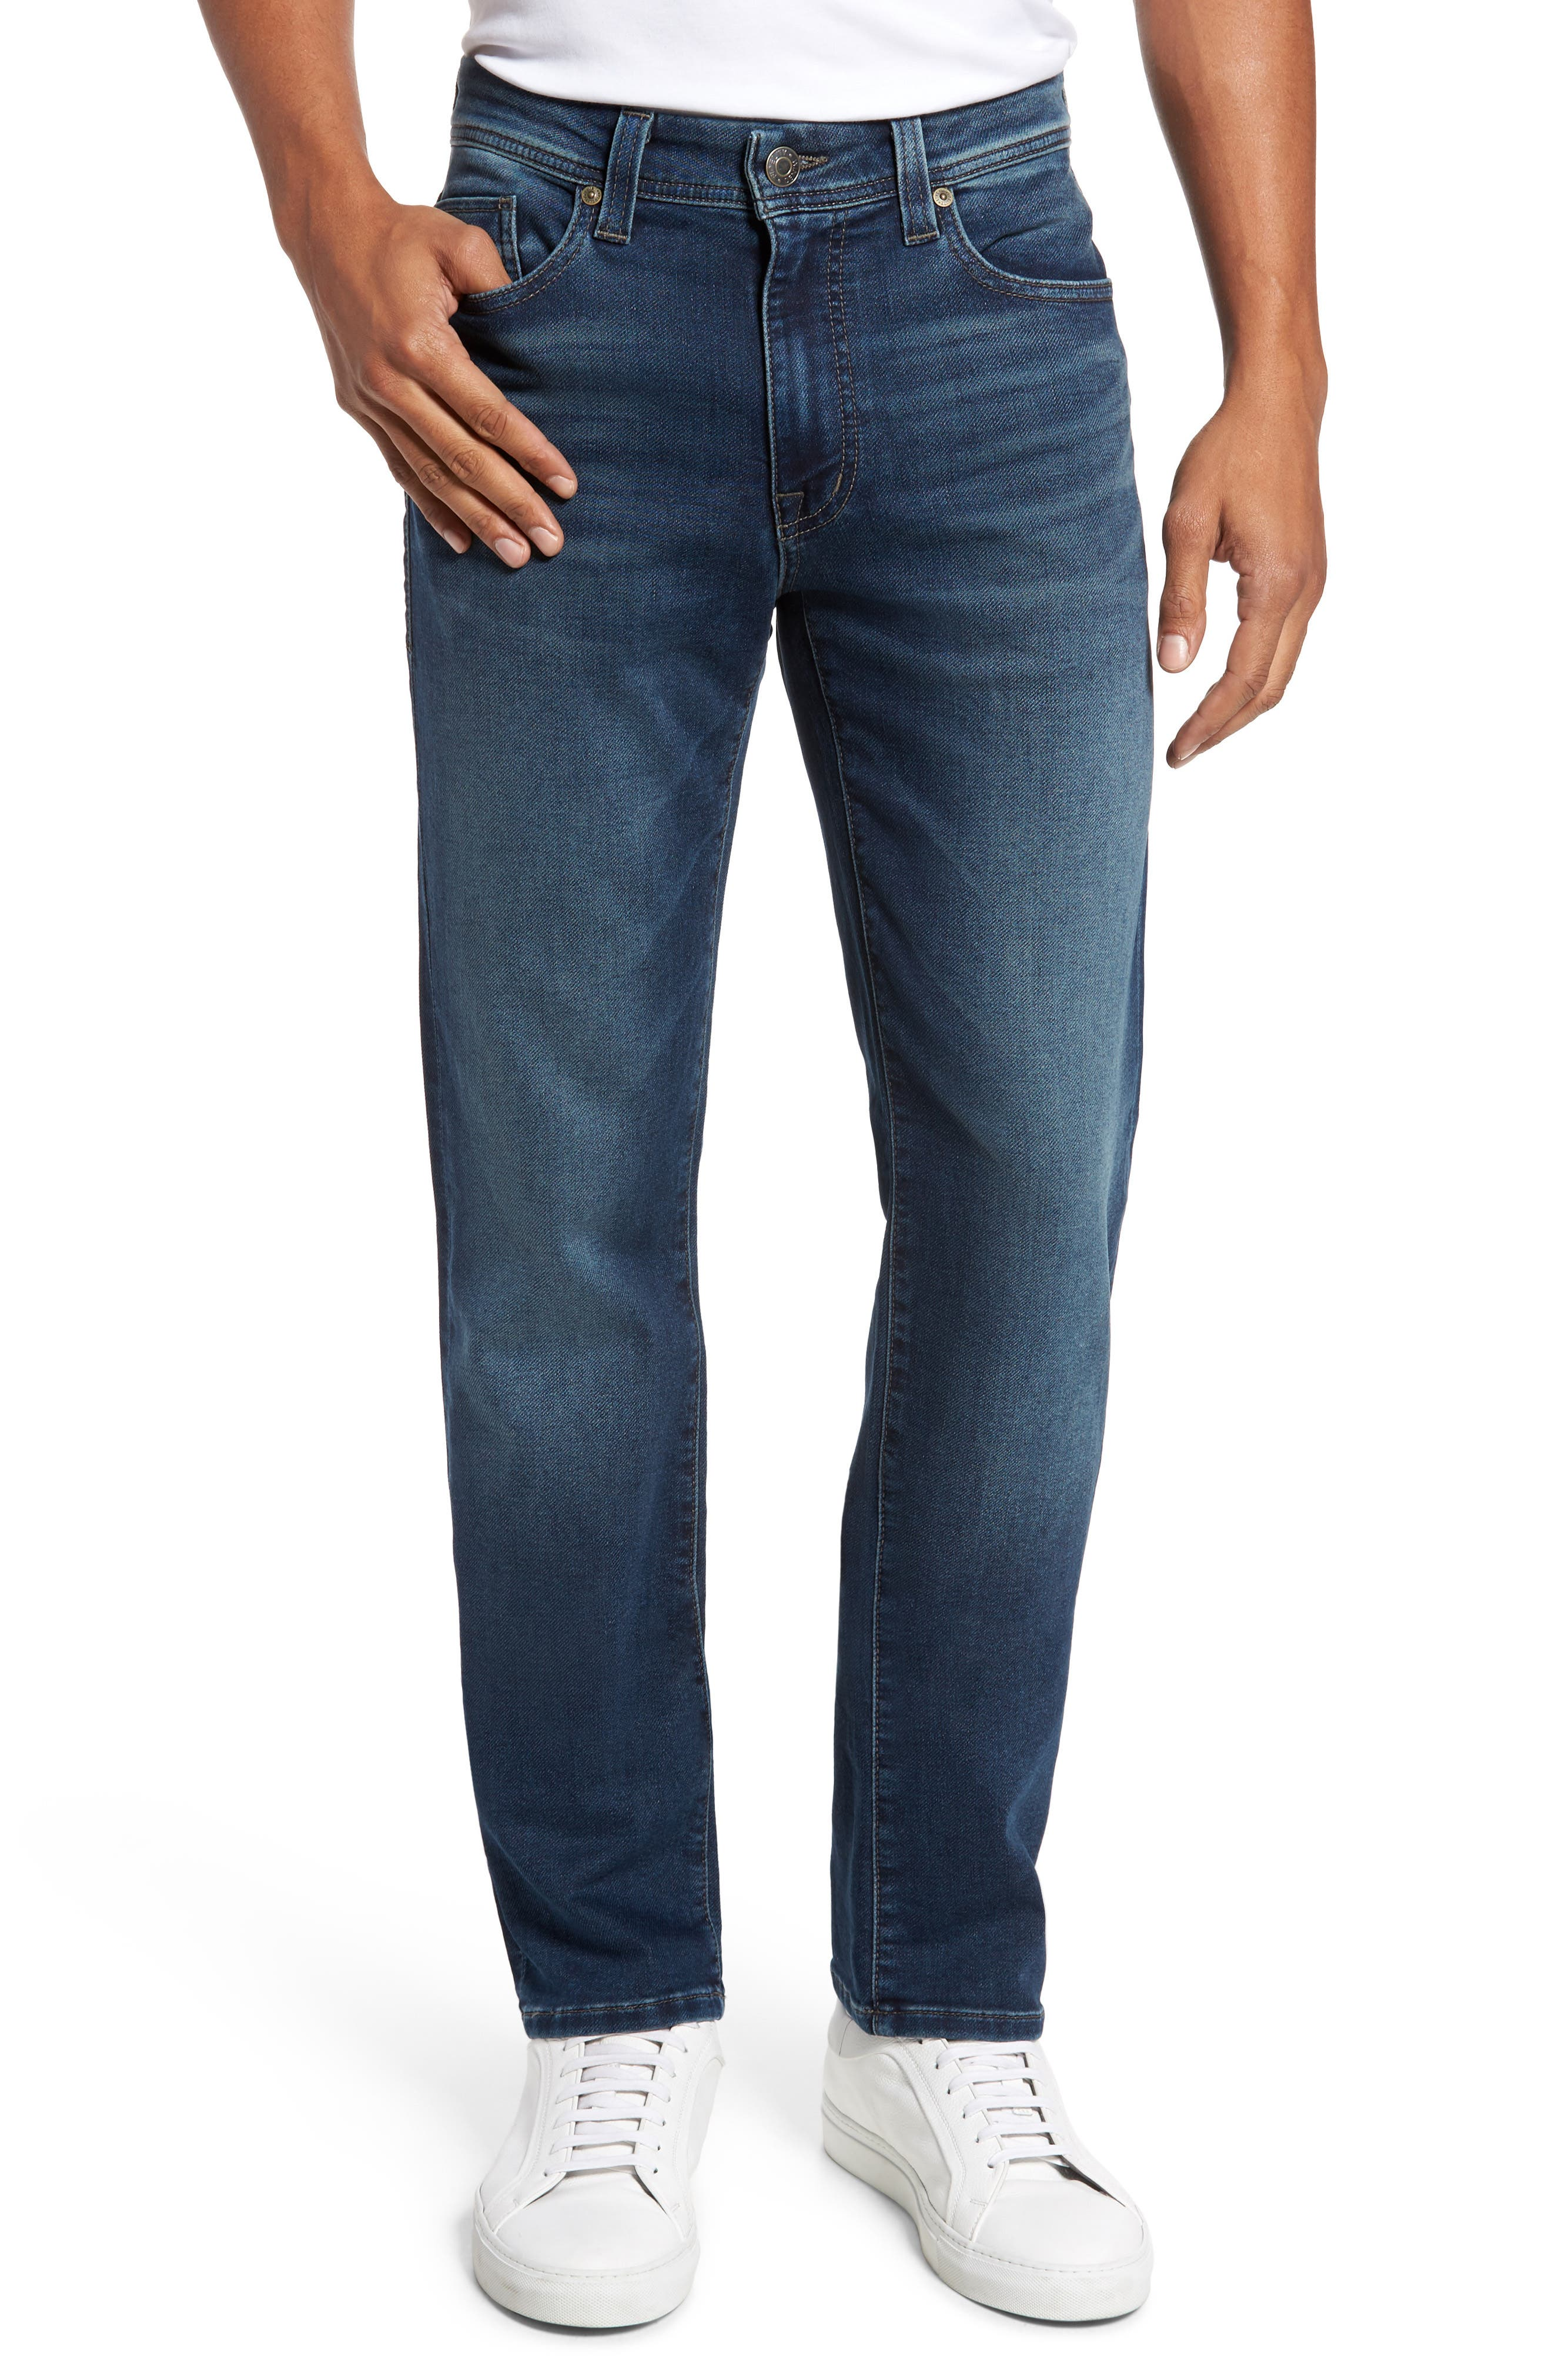 Jimmy Slim Straight Leg Jeans,                             Main thumbnail 1, color,                             Talk About Blue